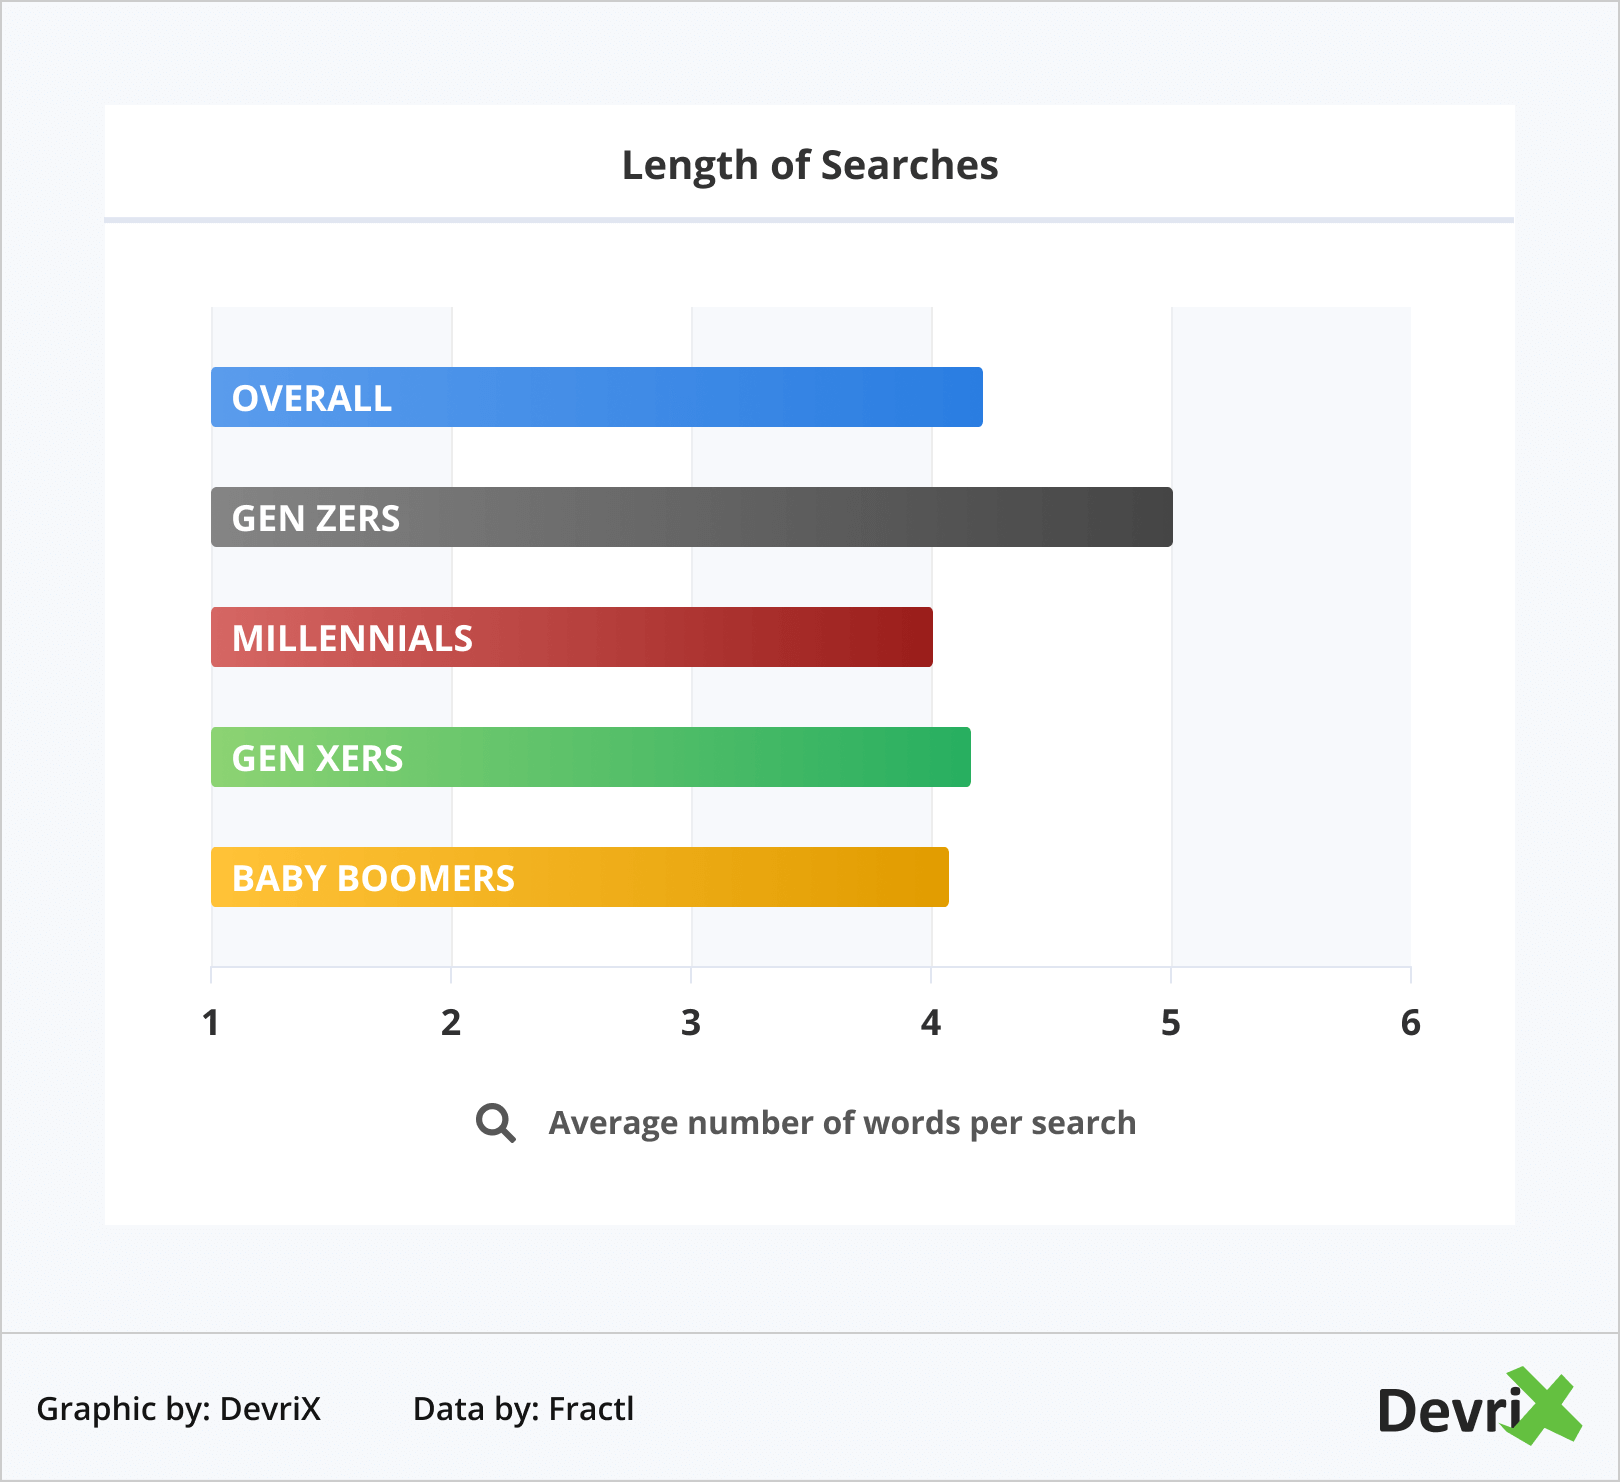 Length of Searches